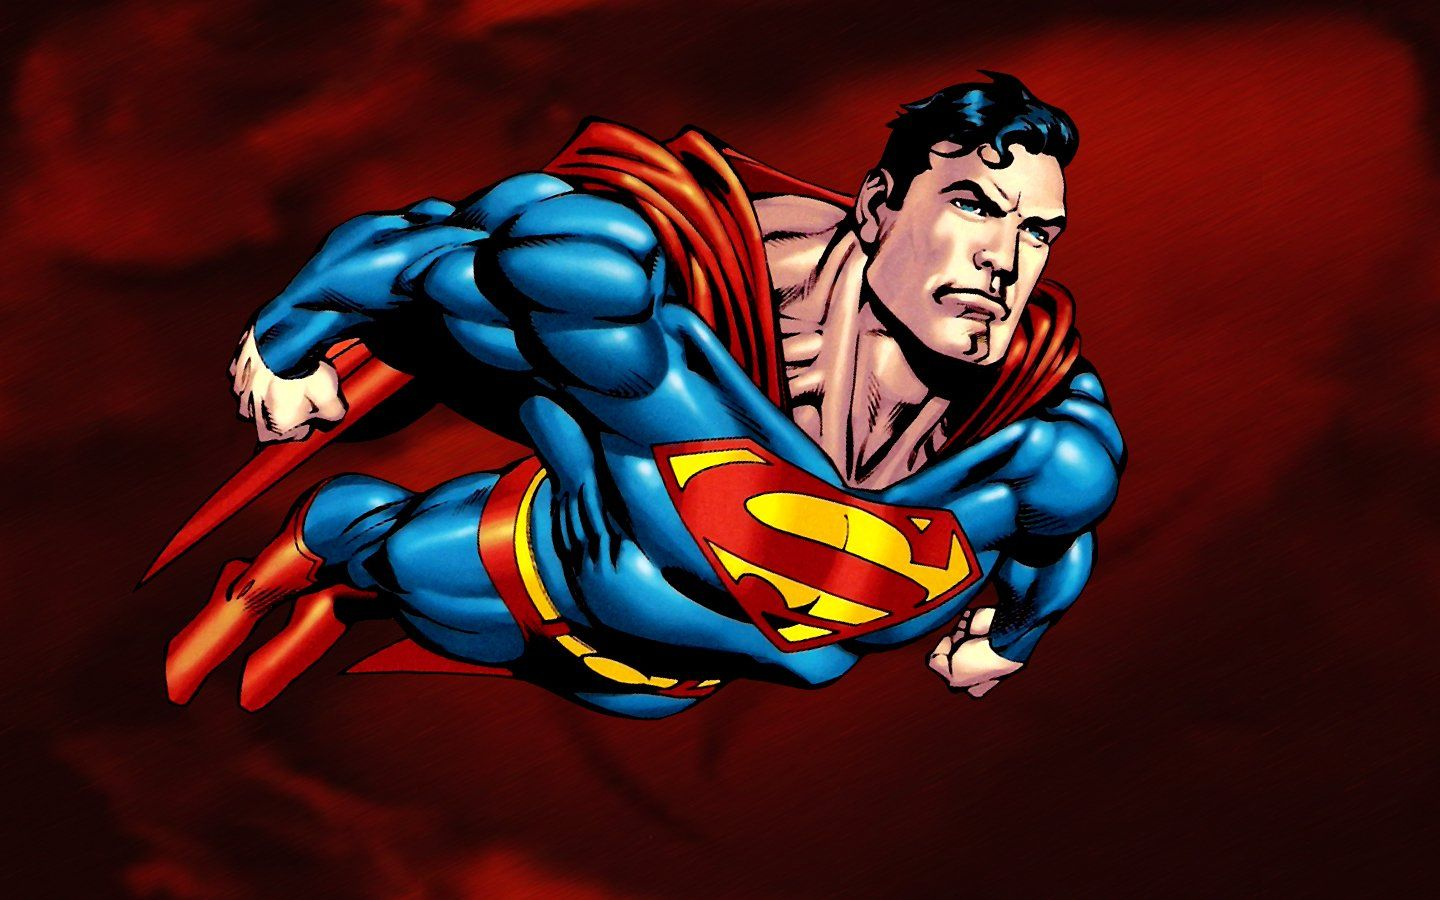 hd superman wallpaper, wallpaper of superman